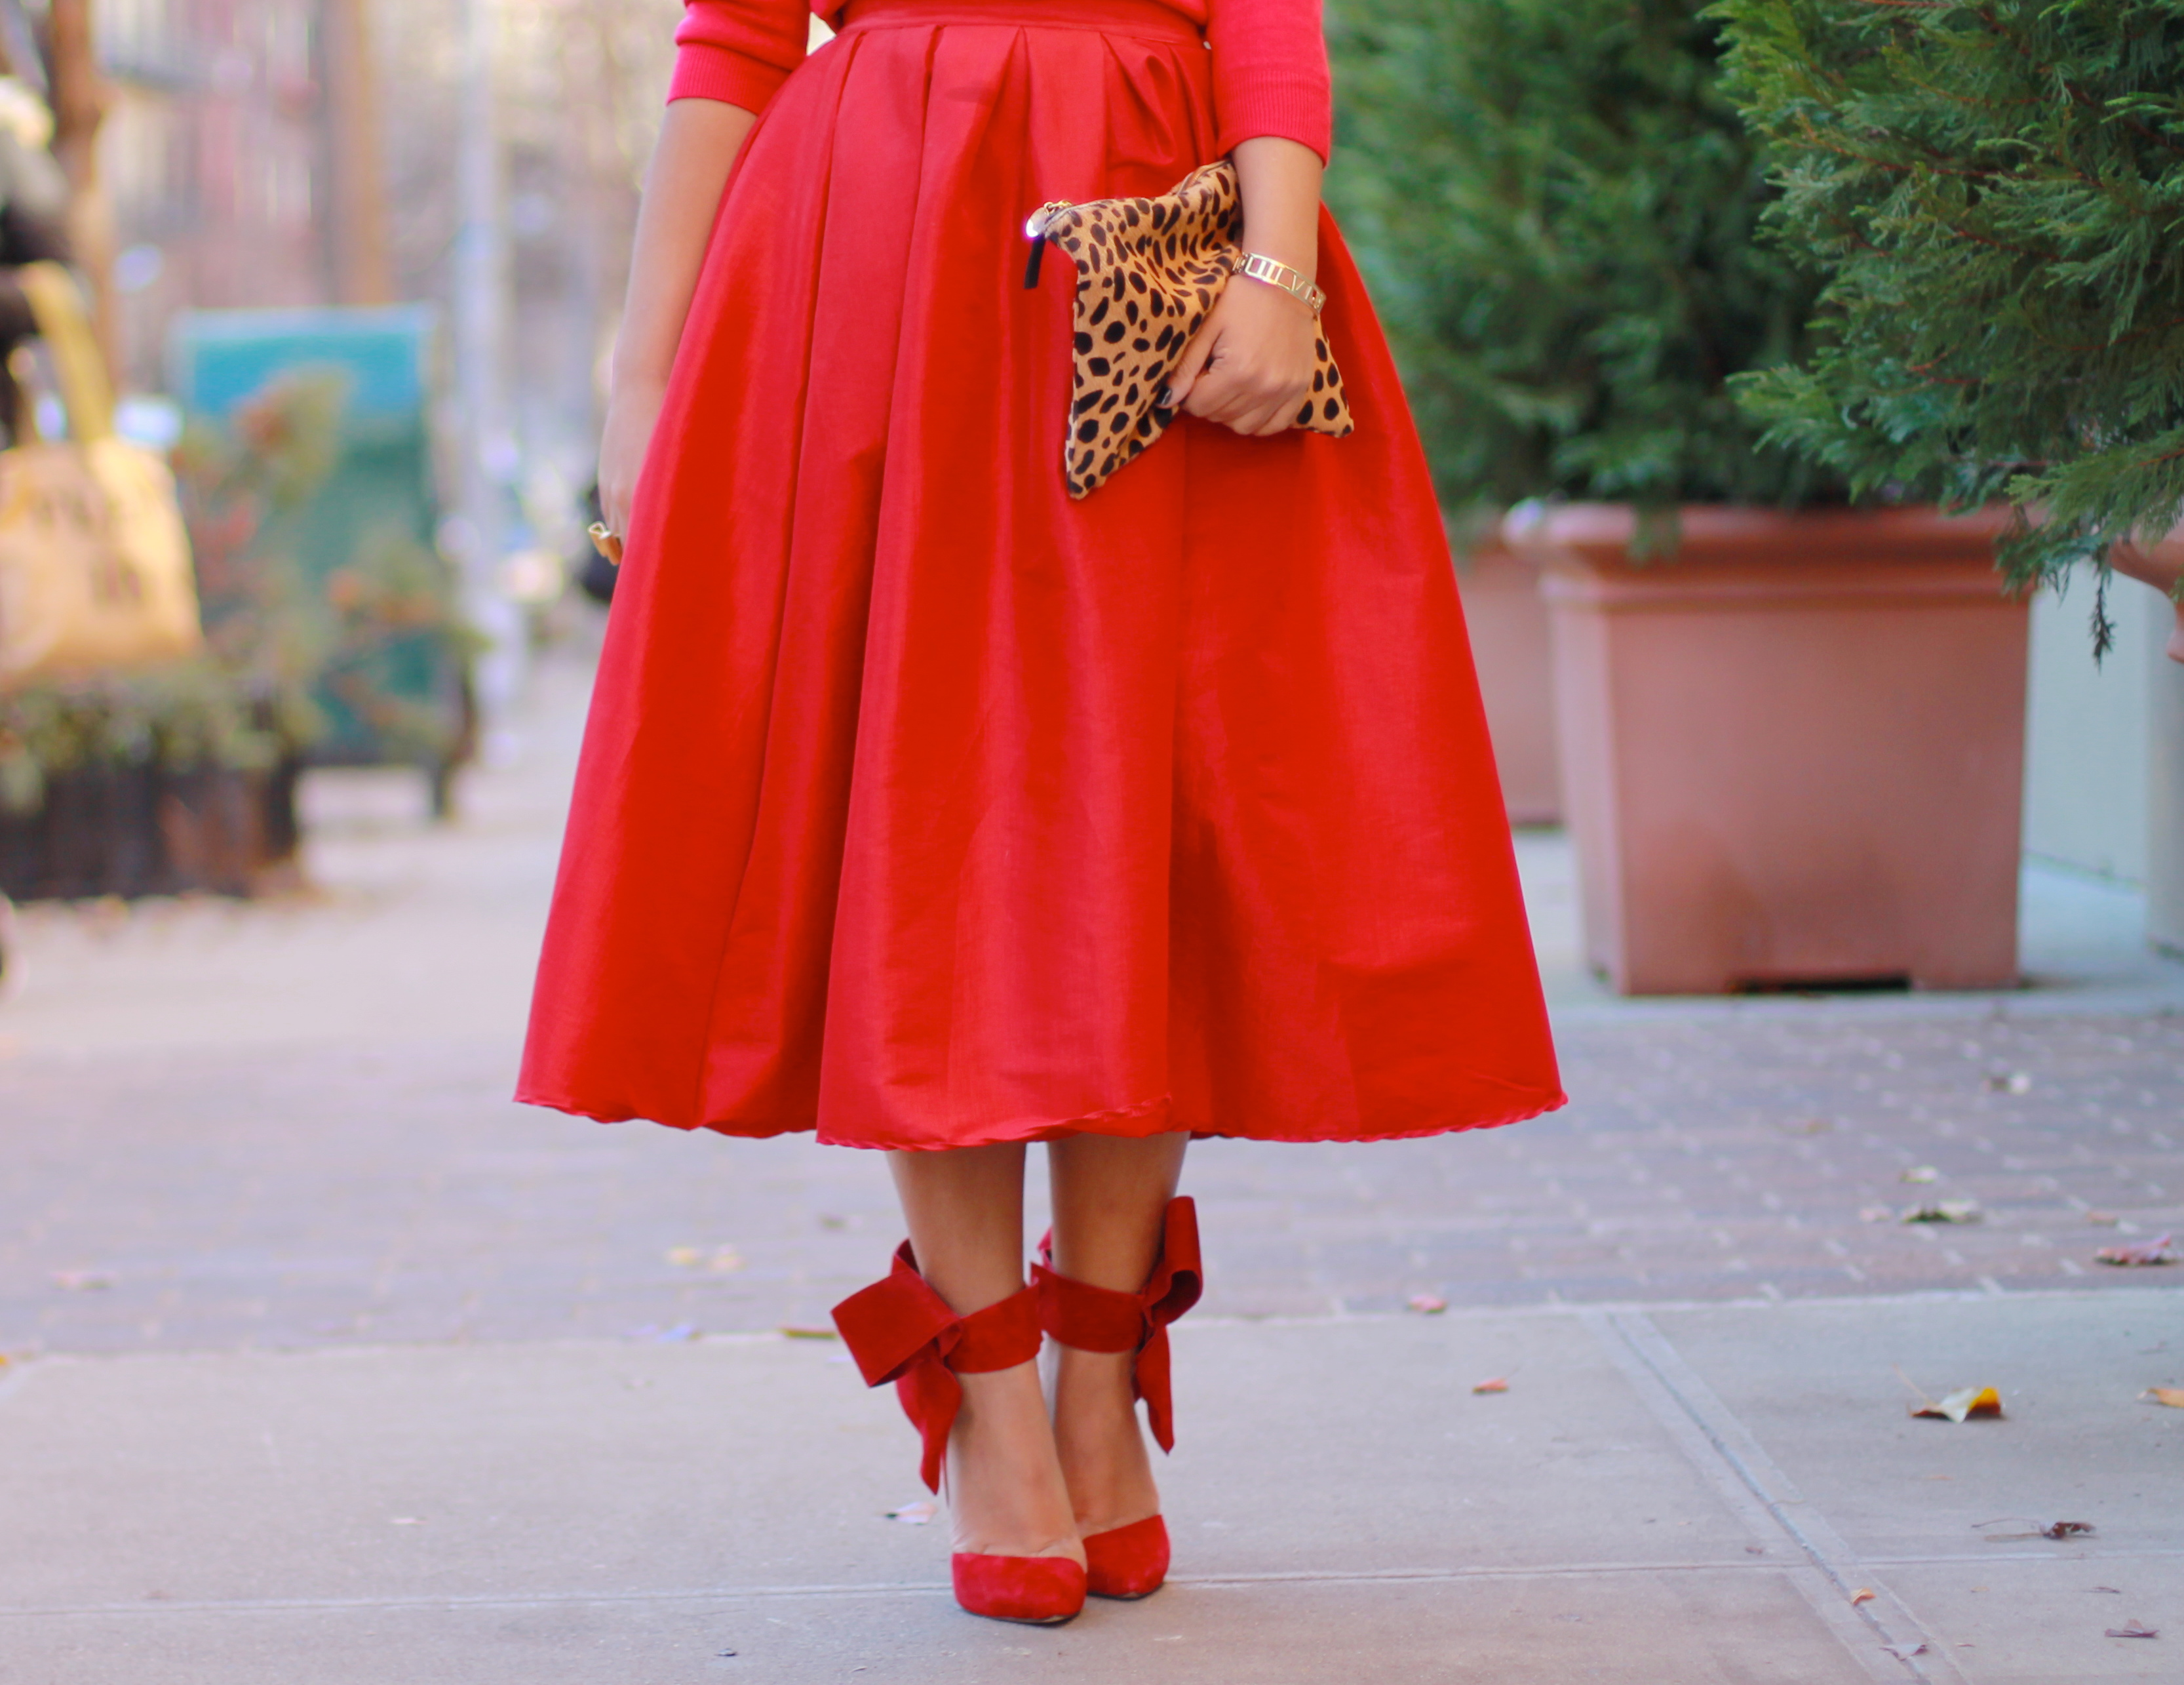 red dress red shoes red skirt red outfit holiday outfit red midi skirt full red midi skirt red midi skirt full midi skirt midi skirt red blogger look all red blogger look red look red outfit red style all red blogger look black fashion blogger black fashion blogger fashion blogger red bow shoes big red bow holiday look what to wear t